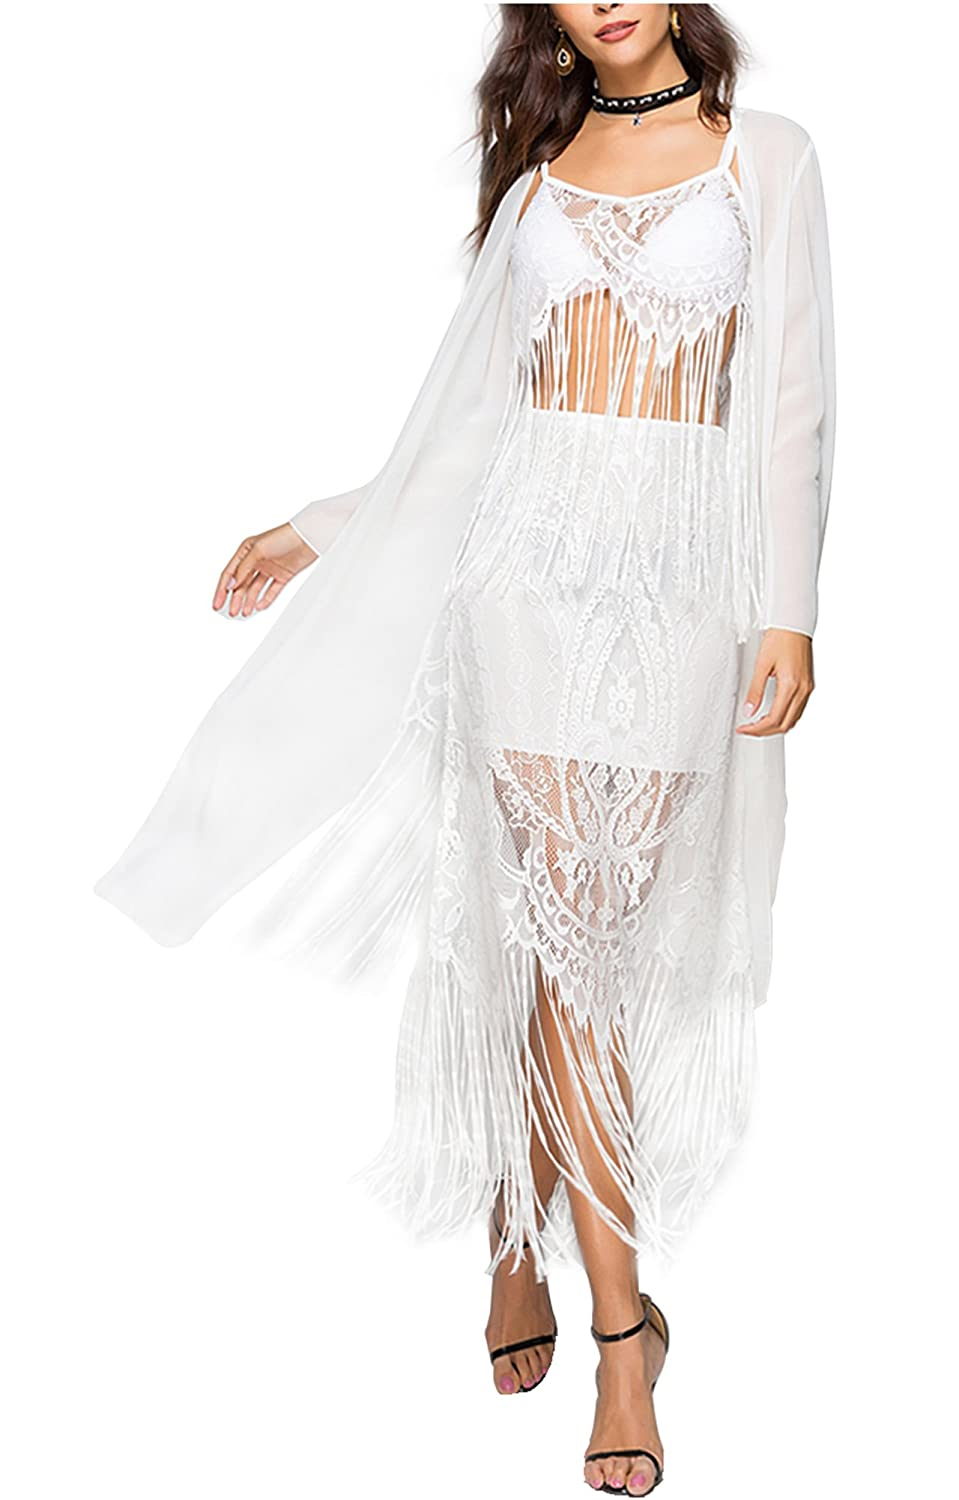 CHIC DIARY Women Bathing Suit Beach Cover Up Chiffon Splice Lace Long Cardigan with Tassel QQUS07210